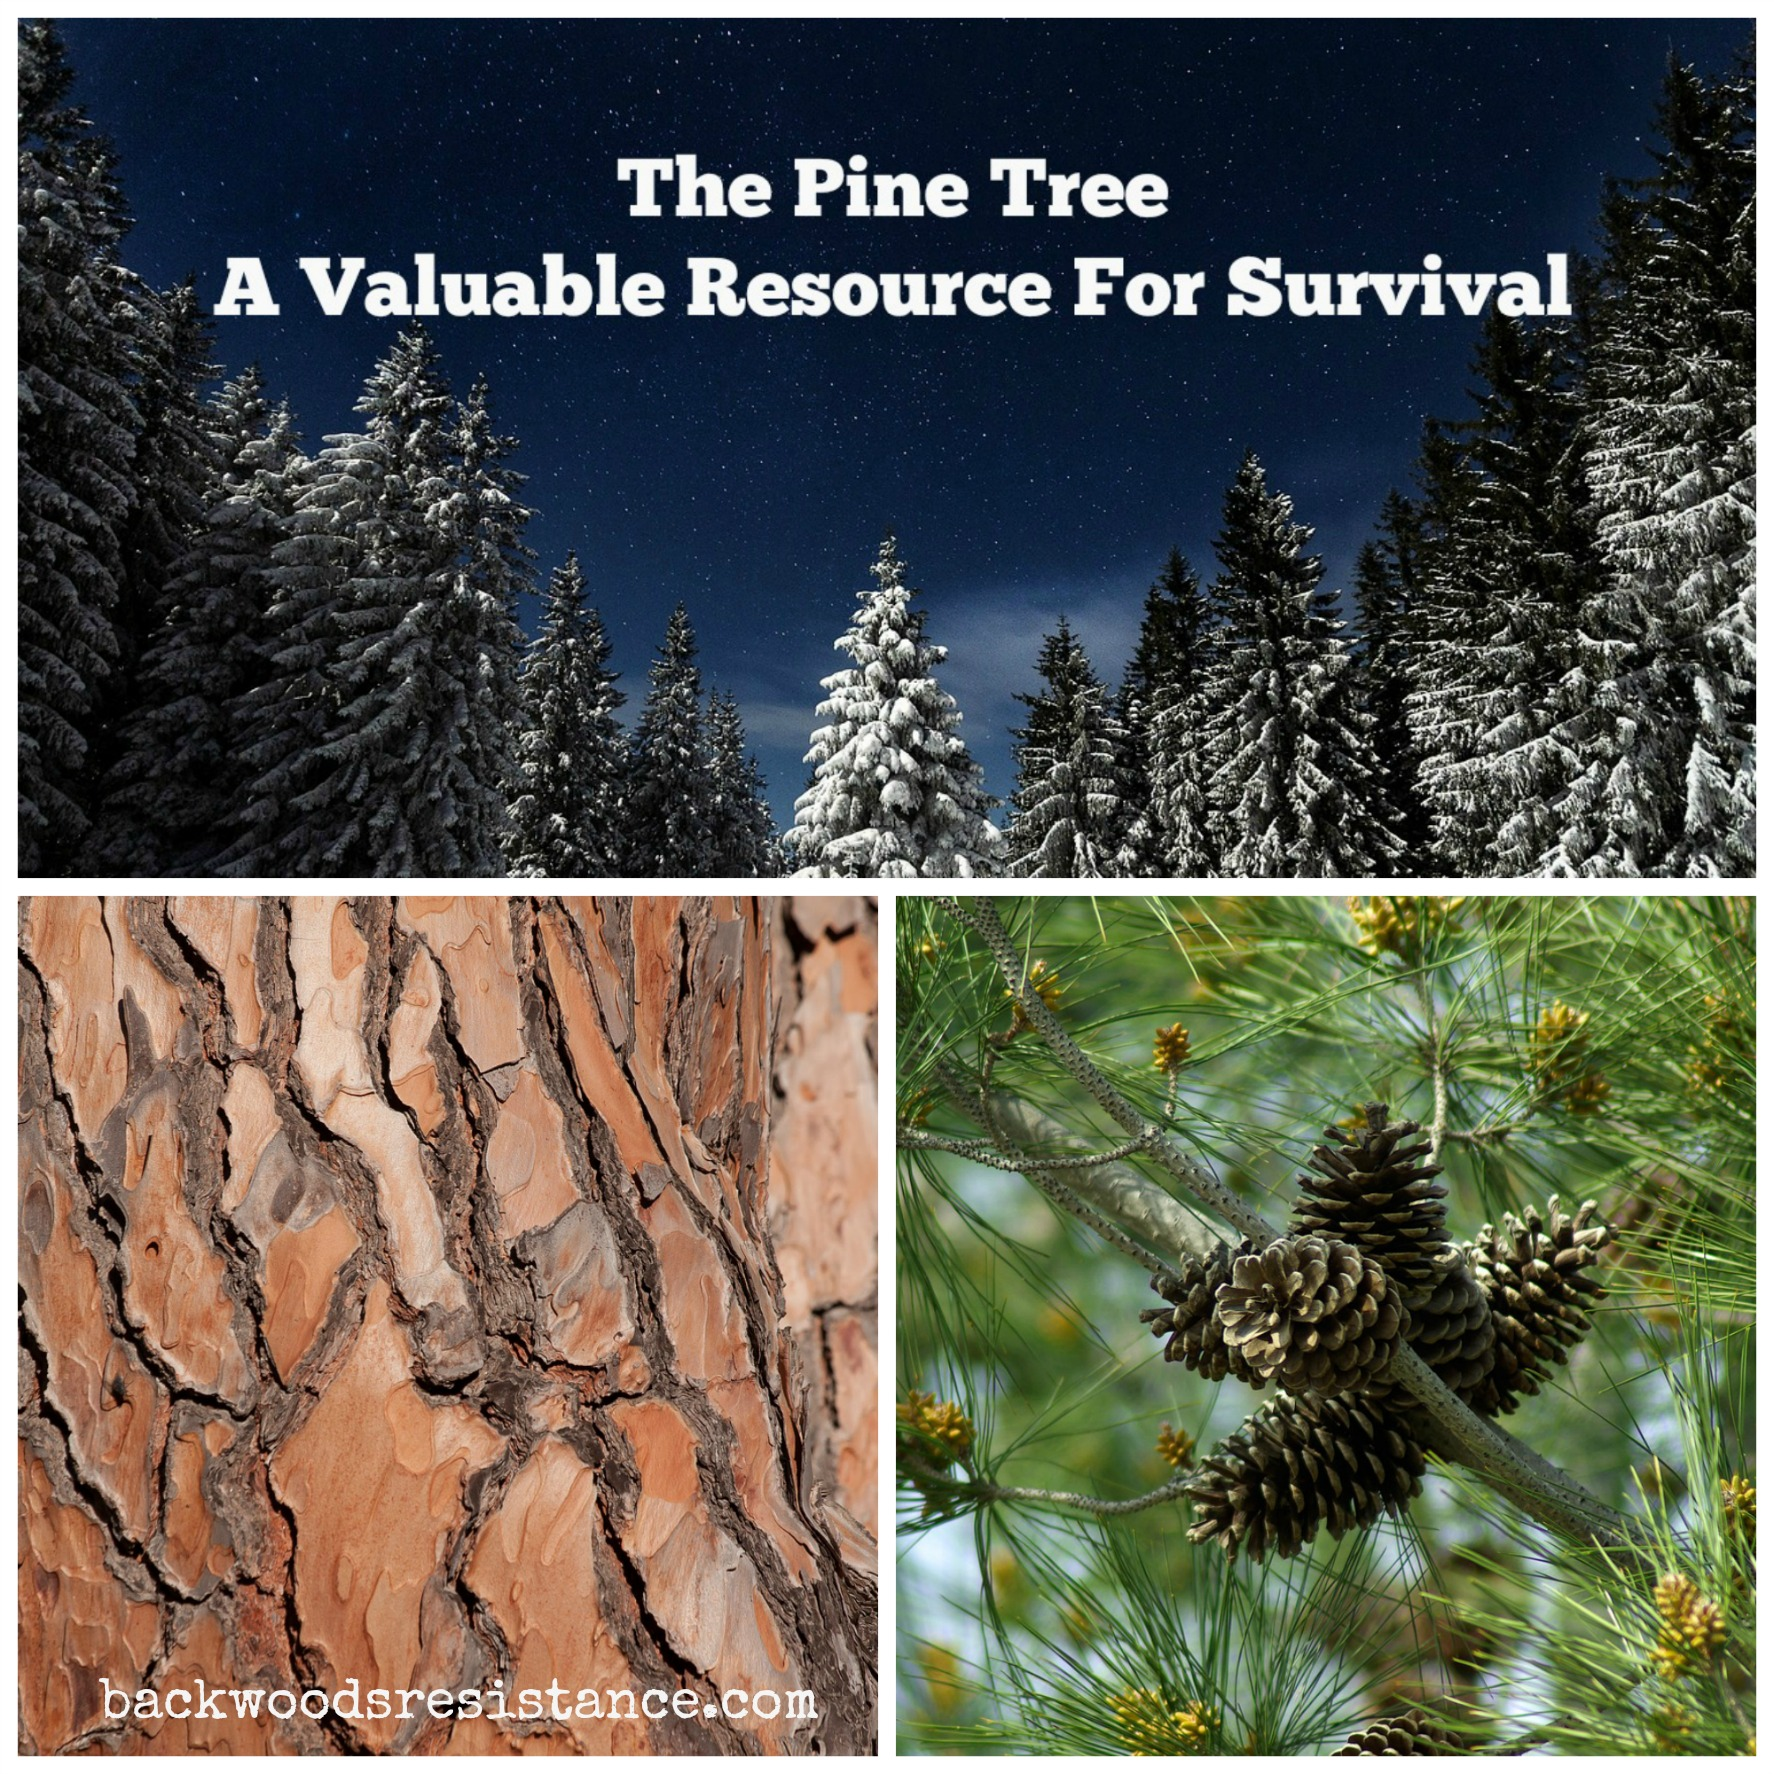 Pine Tree Survival Uses